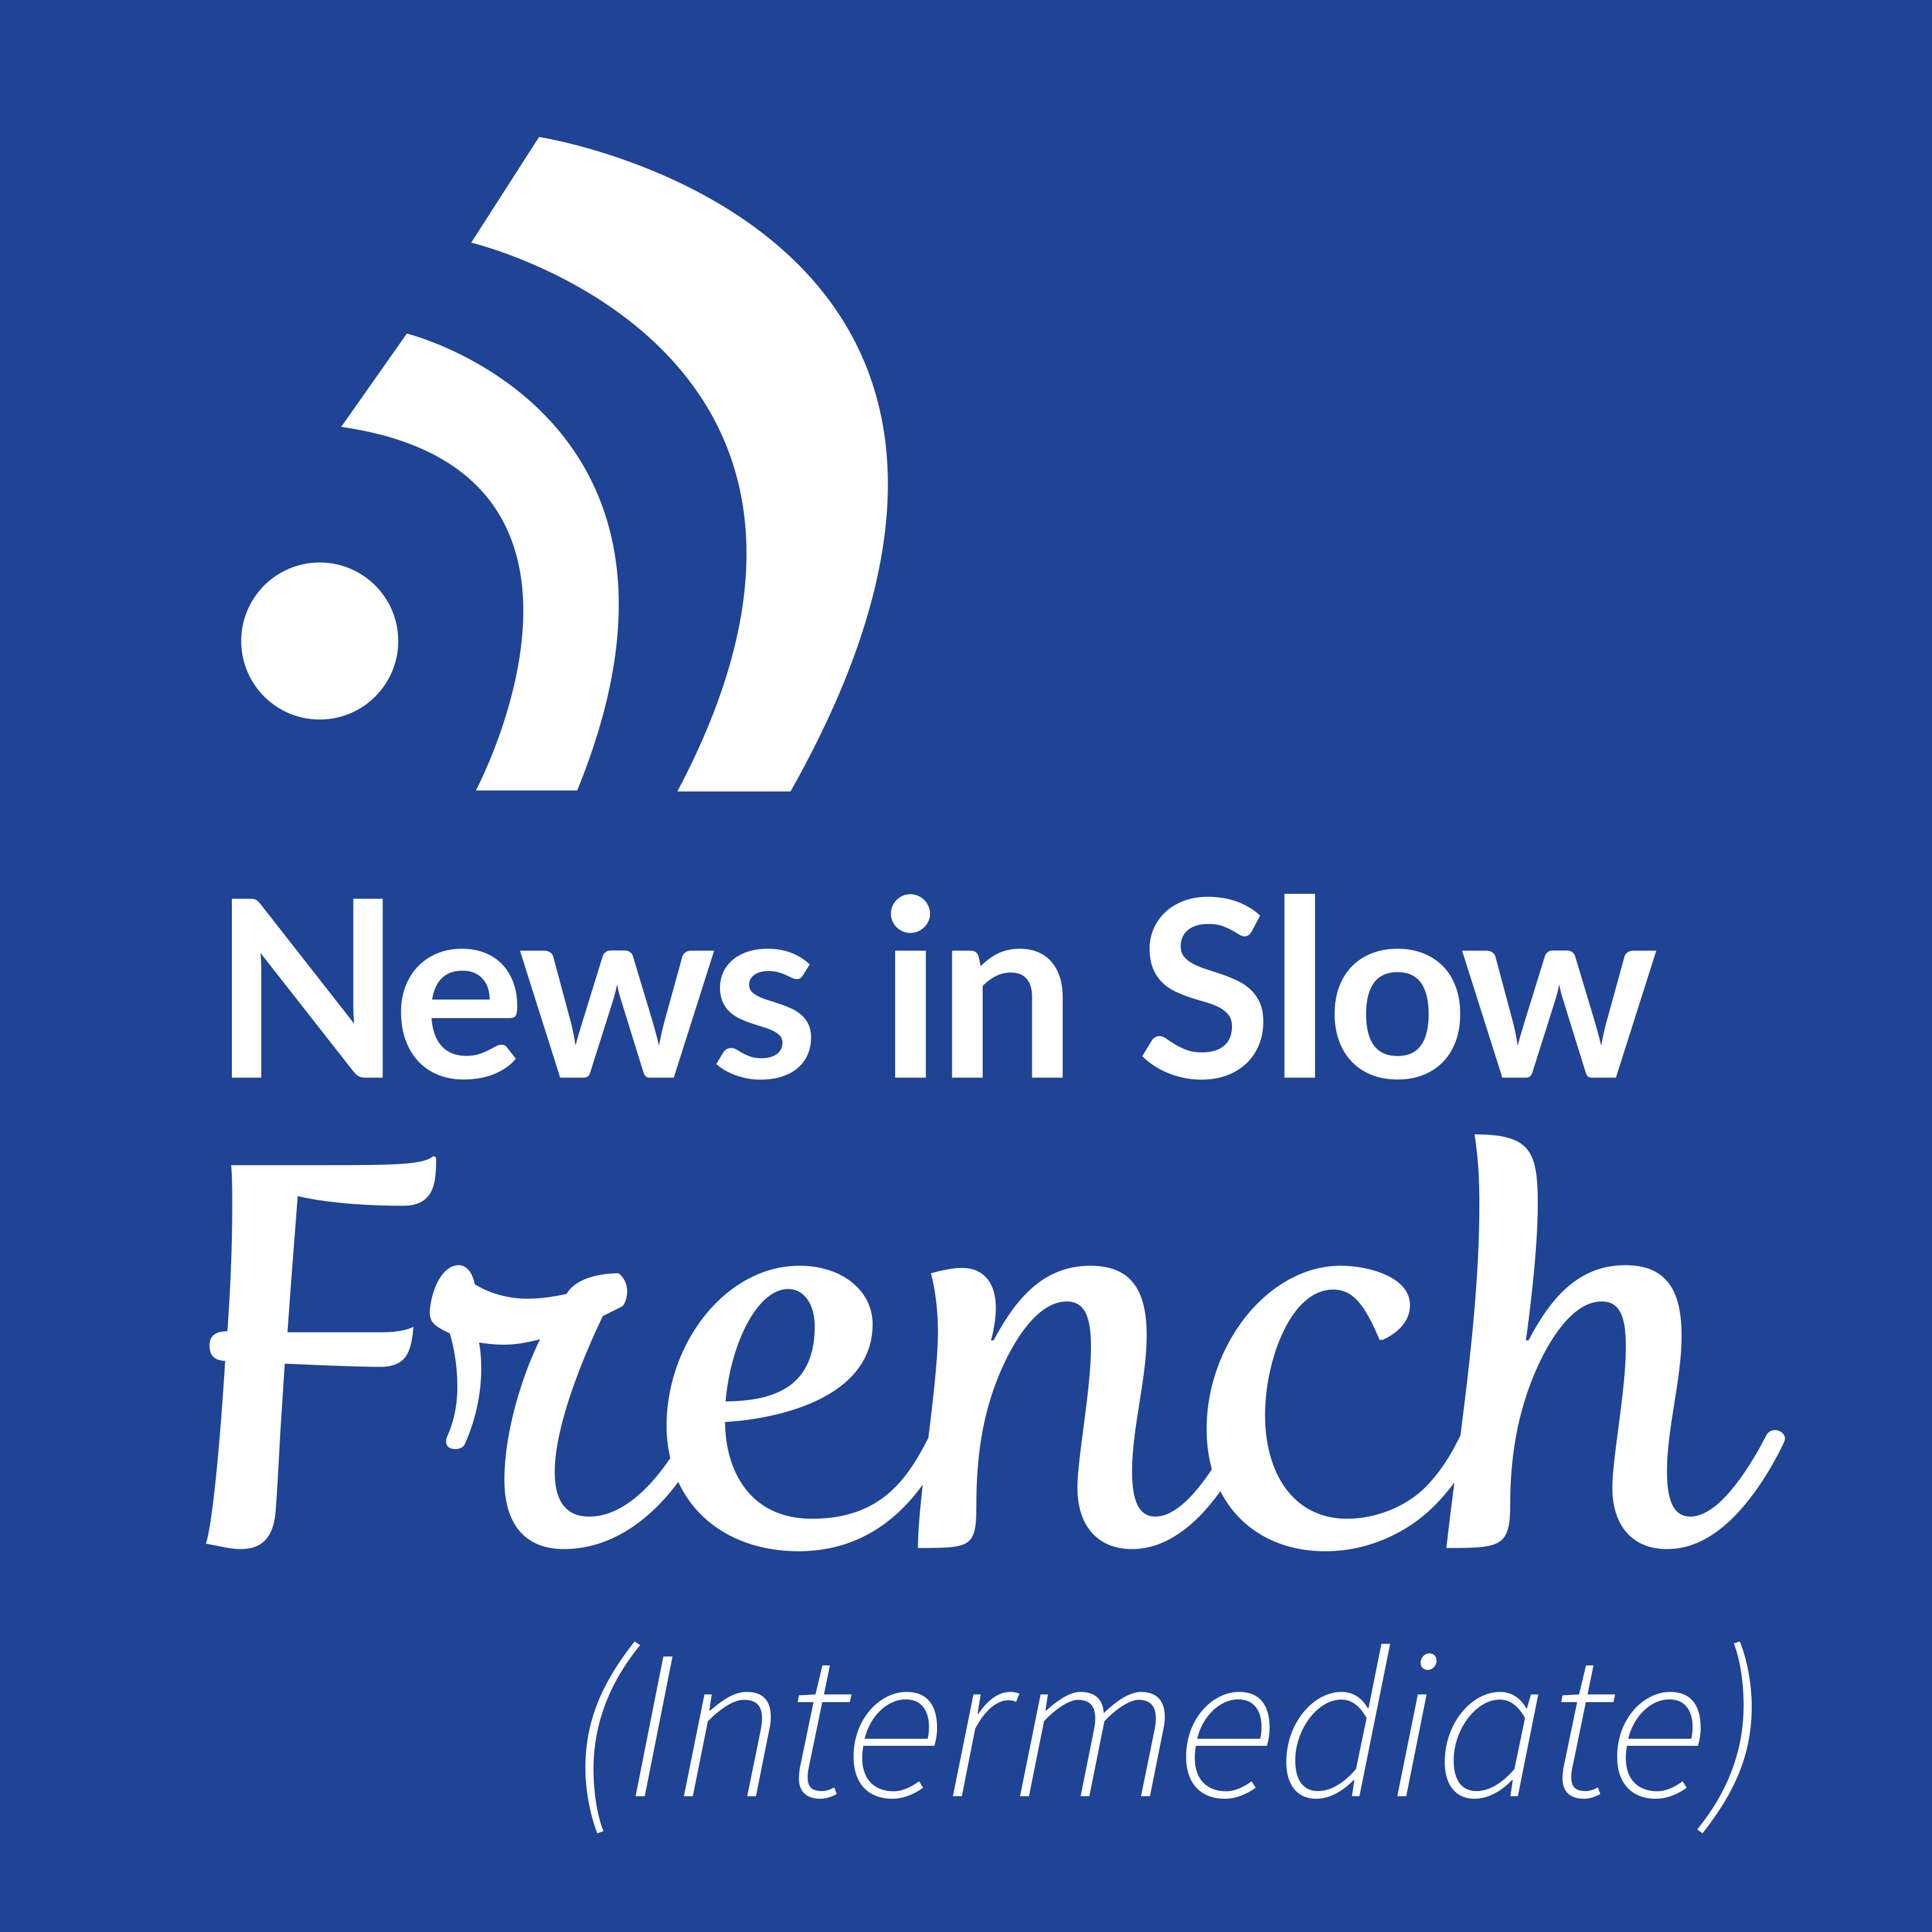 News in Slow French #251 - French conversation about current events